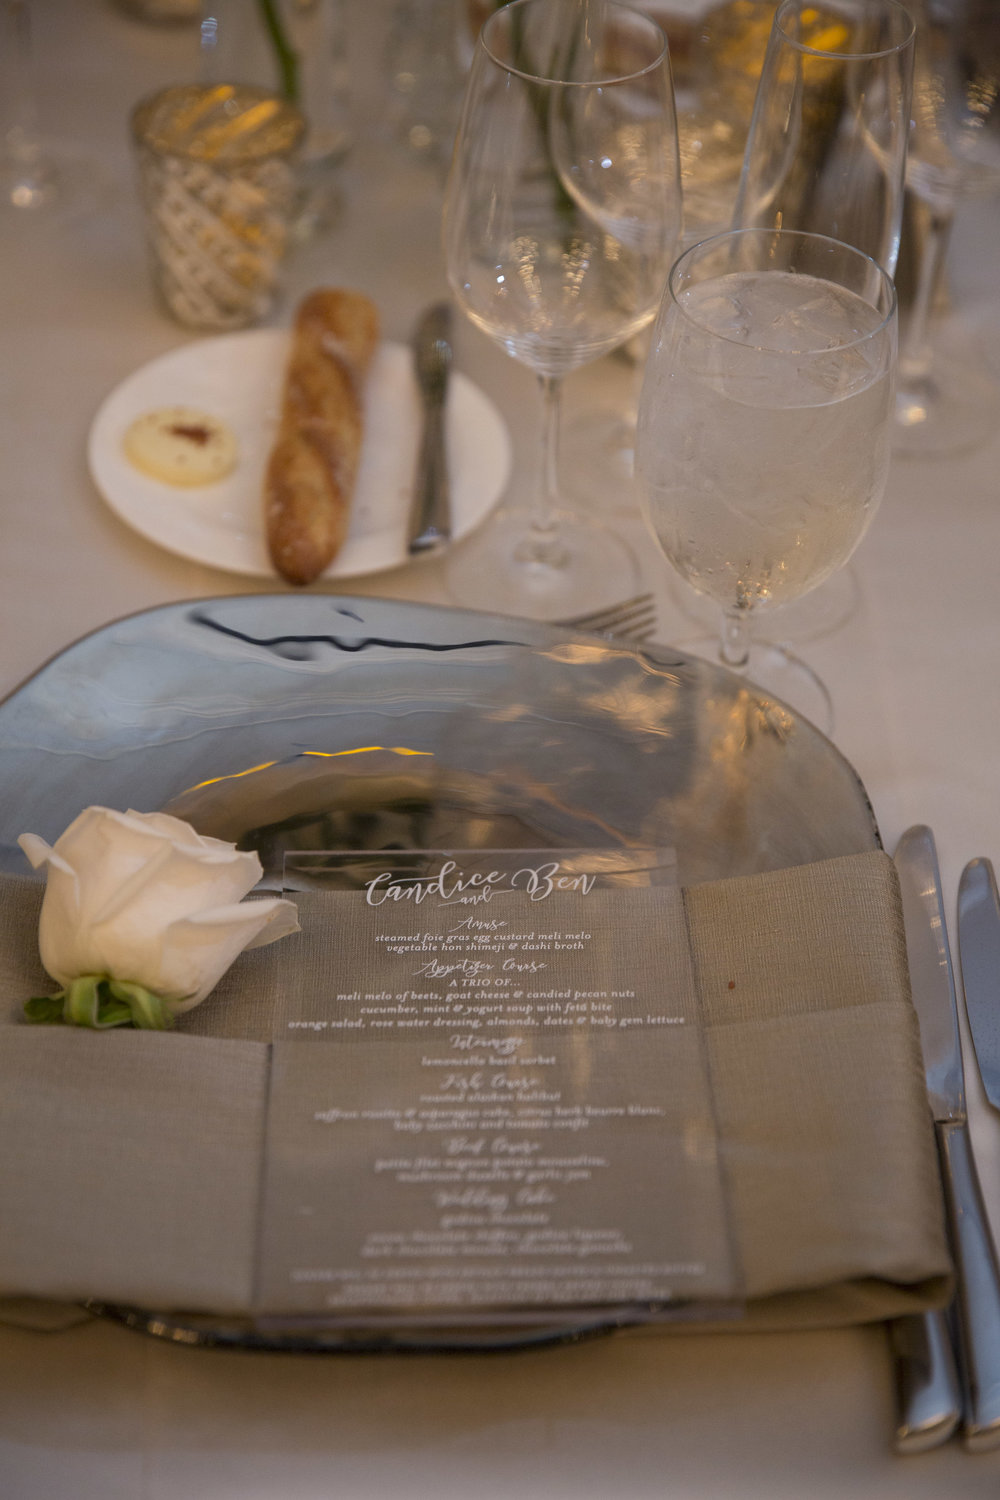 Acrylic menus with white etched lettering.  A white rose on each napkin. WEDDING PLANNING & EVENT DESIGN •  Andrea Eppolito Events , PHOTOGRAPHY •  AltF Photography ,  FLORAL AND DECOR DESIGN & PRODUCTION • Destinations by Design , CATERING •  Mandarin Oriental Las Vegas , COCKTAILS •  The Grand Bevy , WEDDING GOWN •  Galia Lahav ,  SHOES •  Jimmy Choo , ACRYLIC MENUS & SEATING CHART•  She Paperie